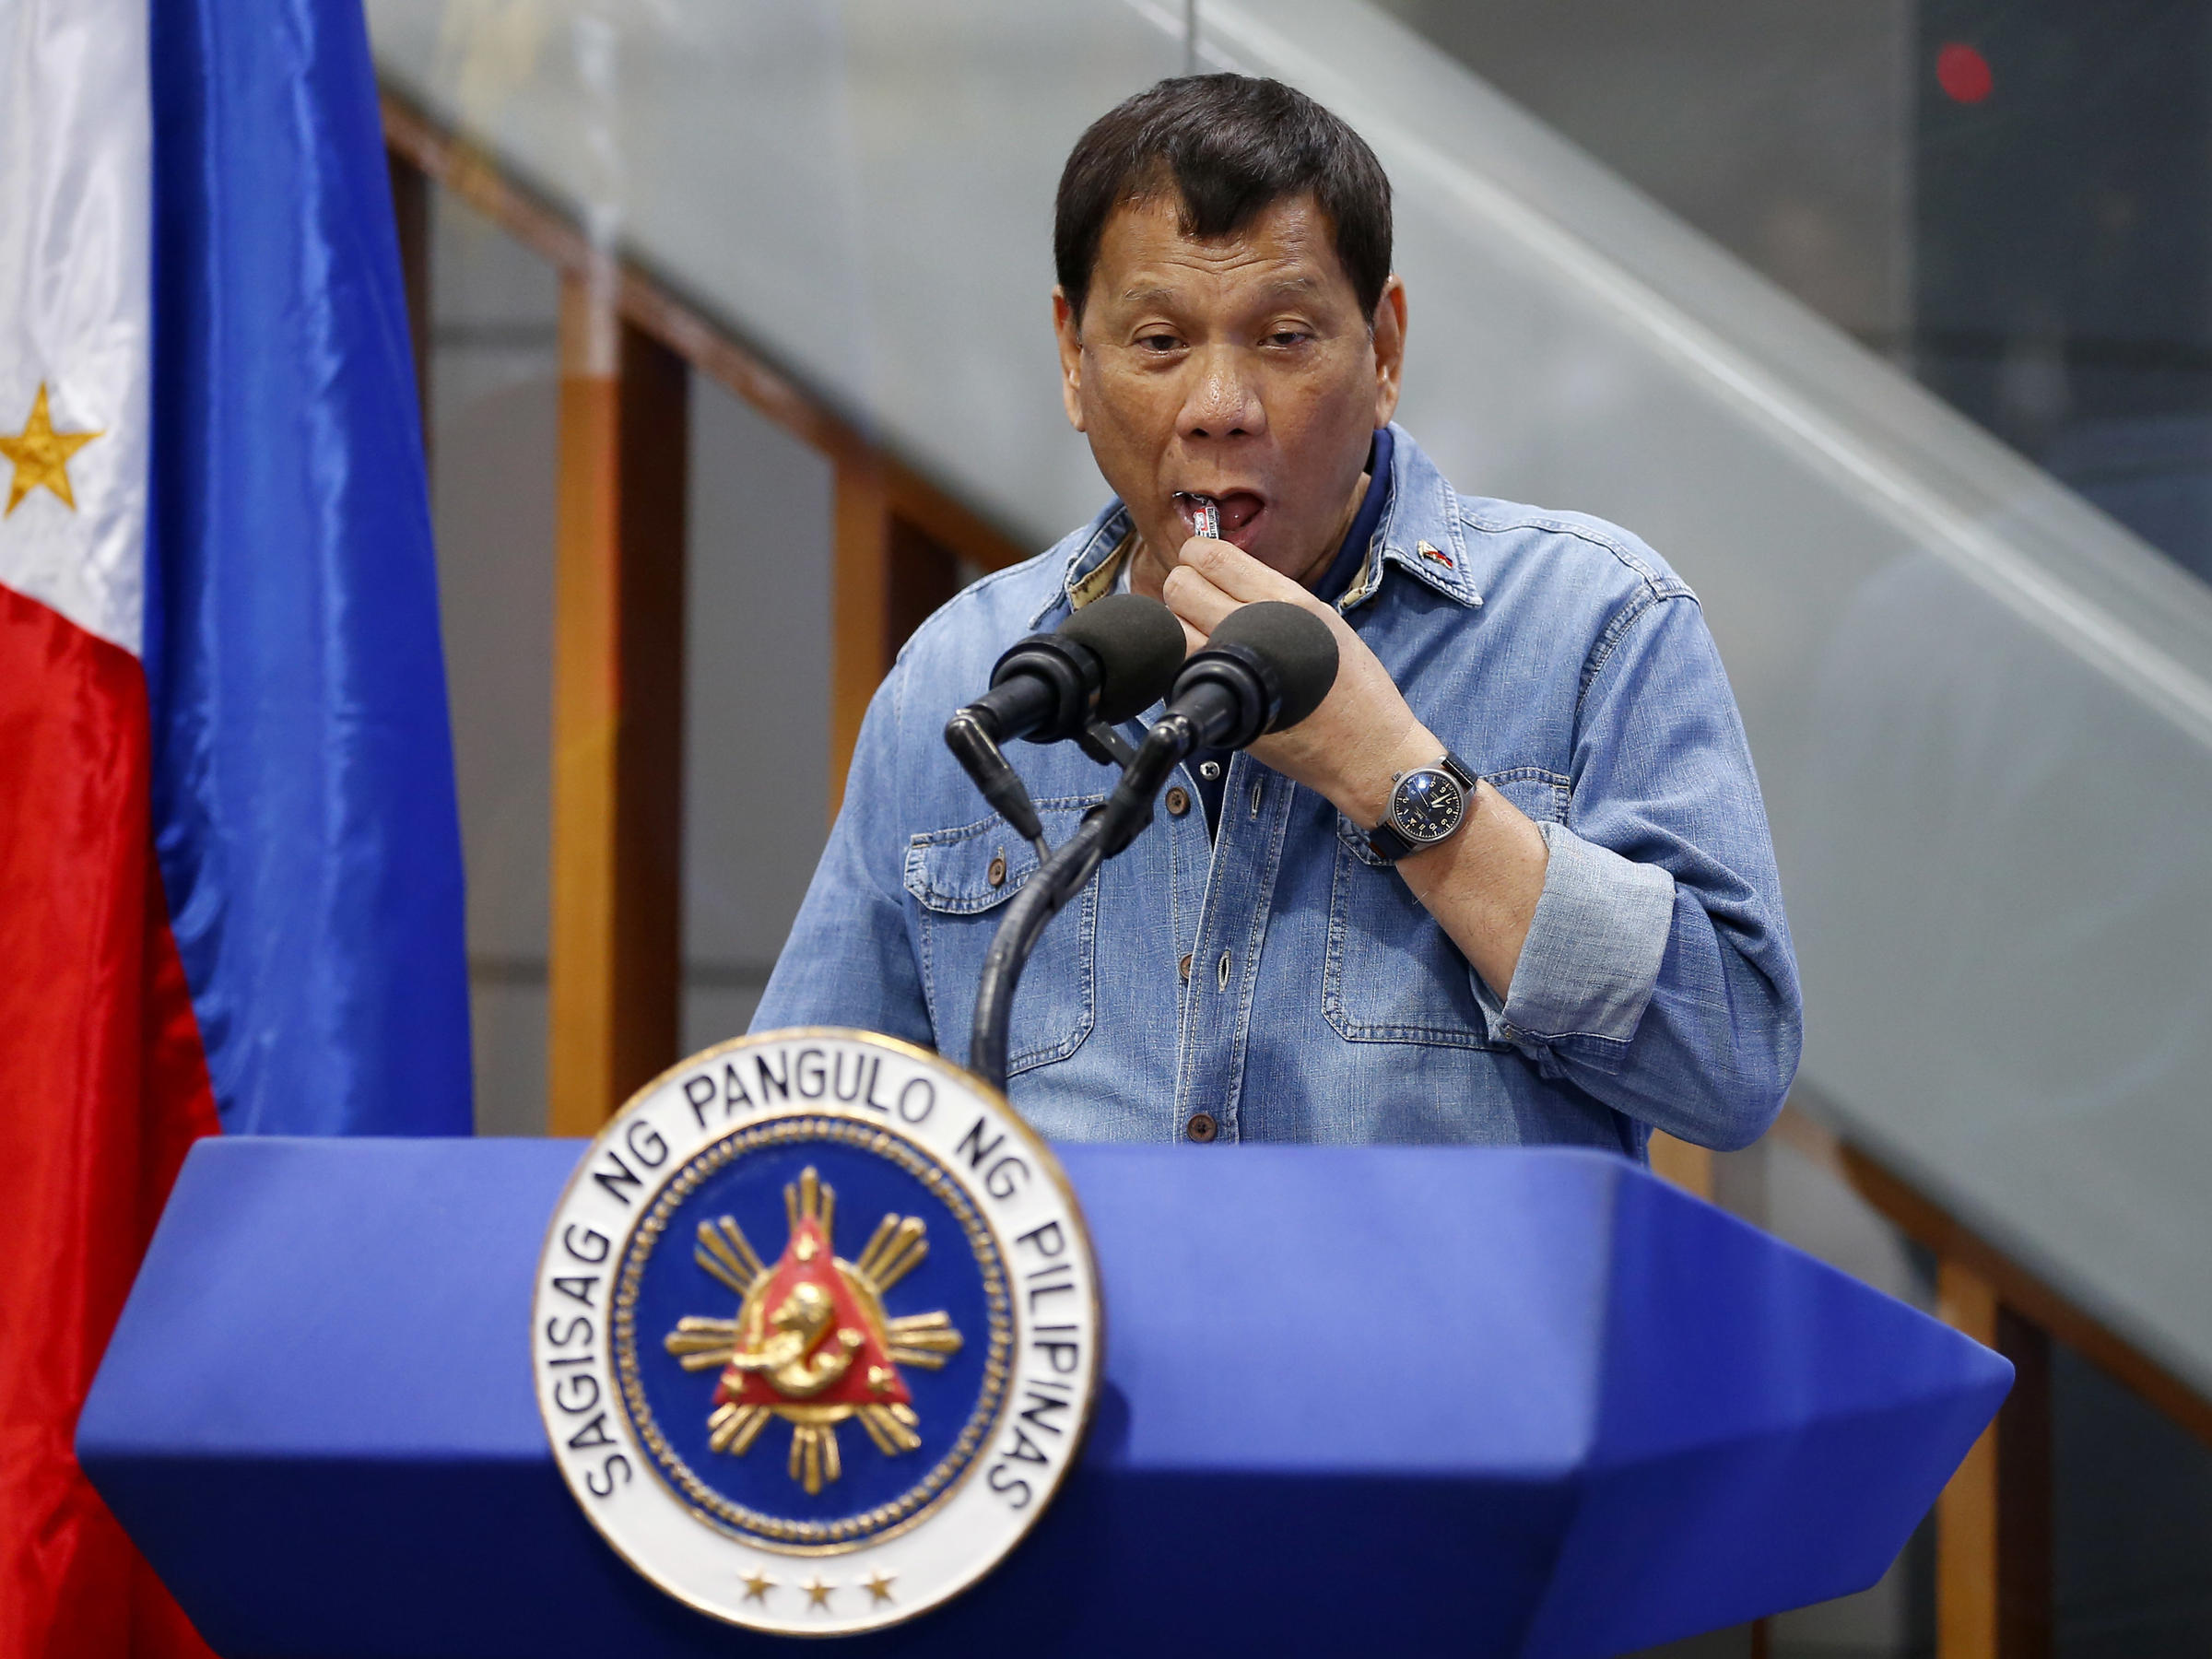 Kuwait invites Duterte to visit amid tensions